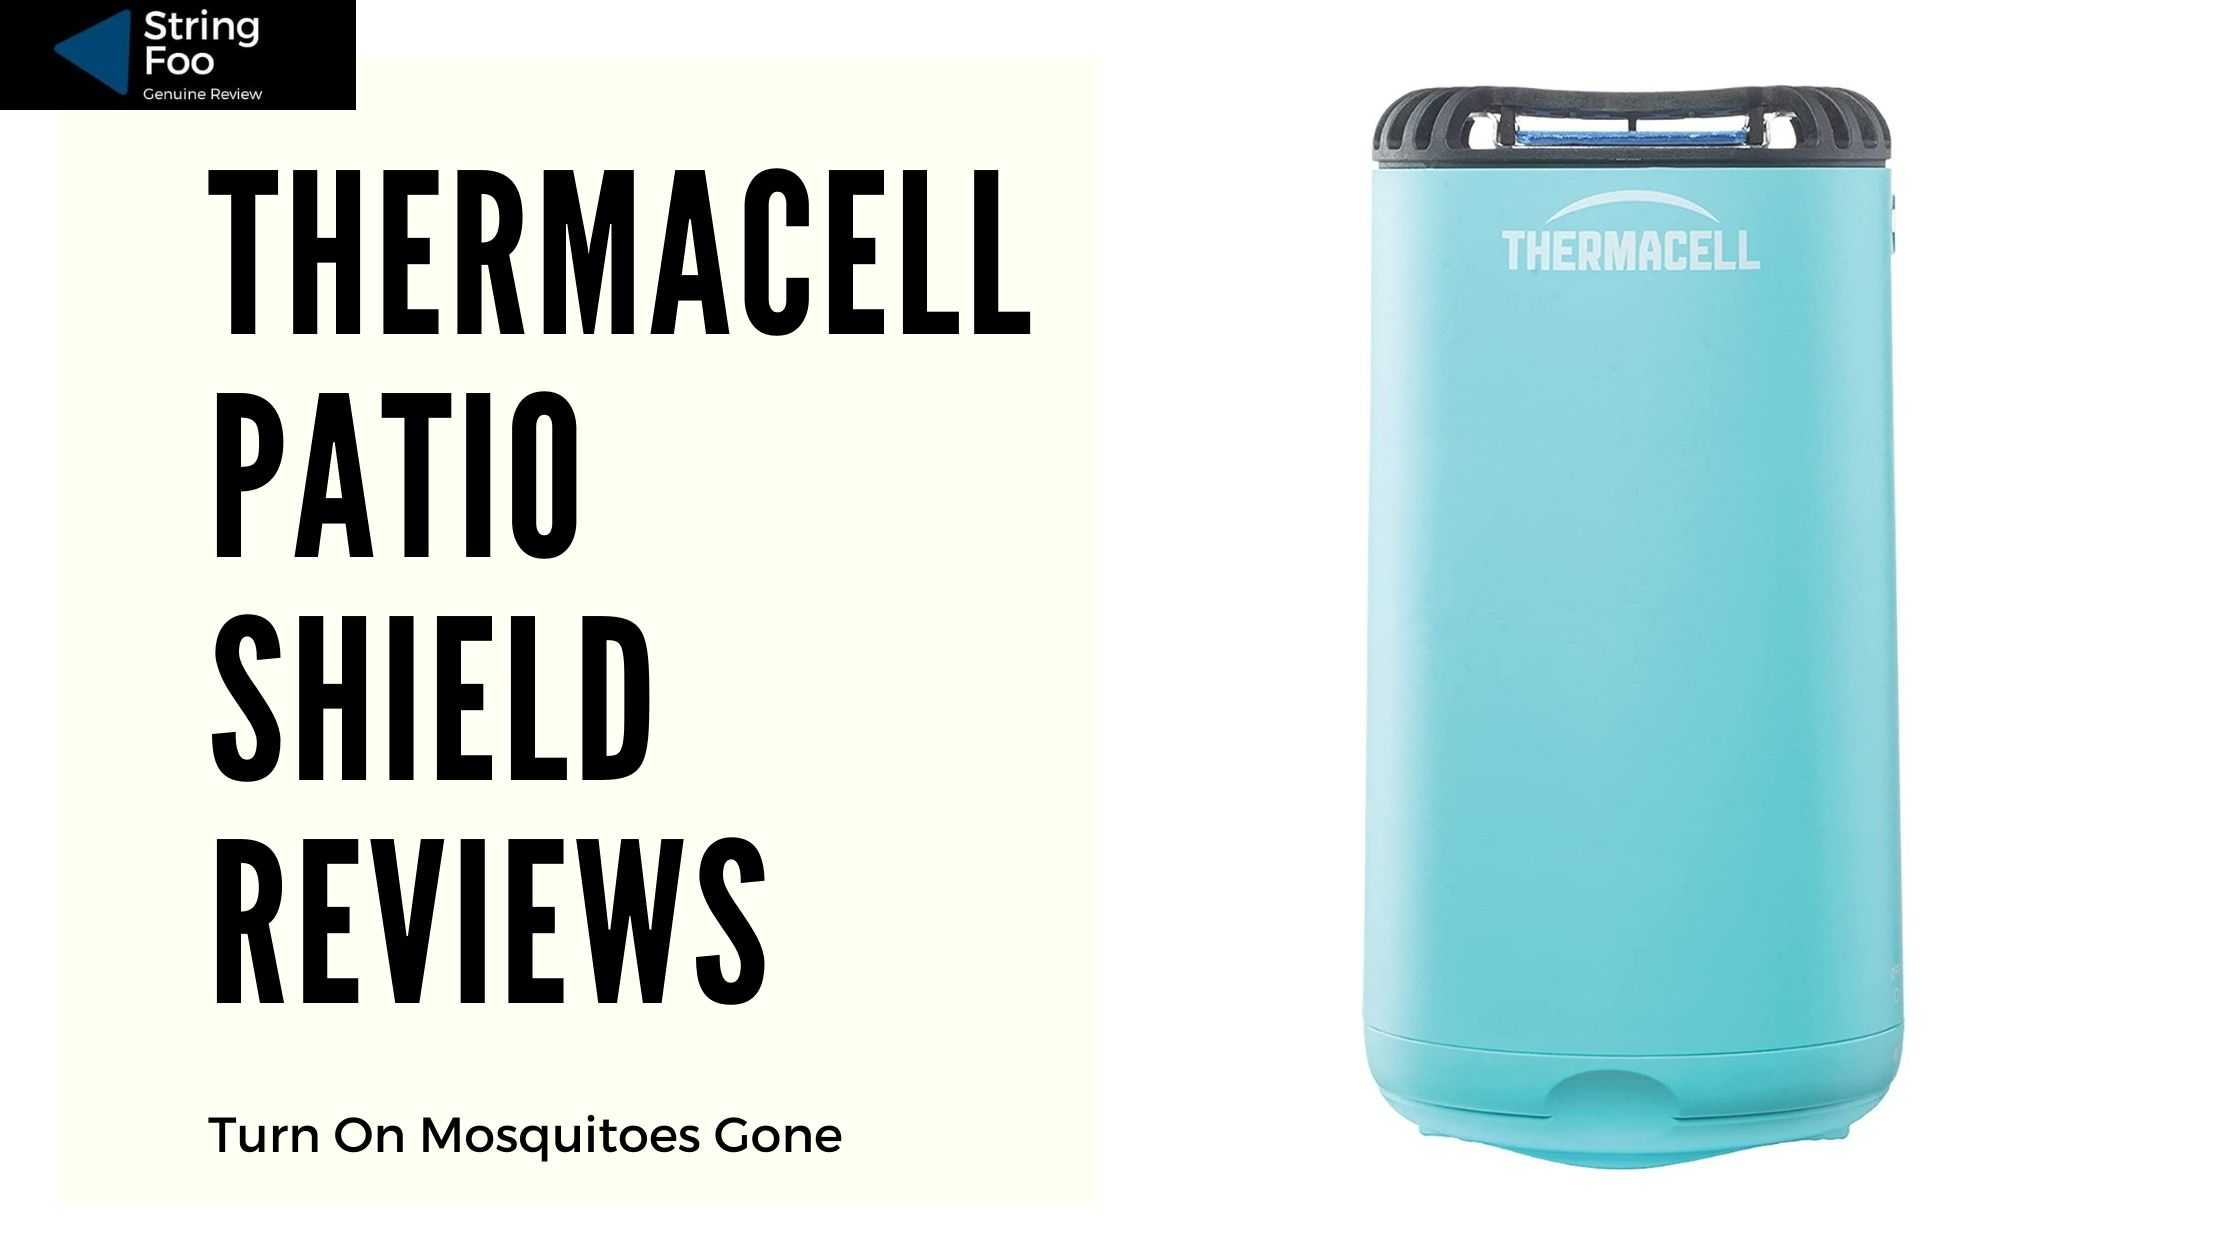 Thermacell Patio Shield Reviews